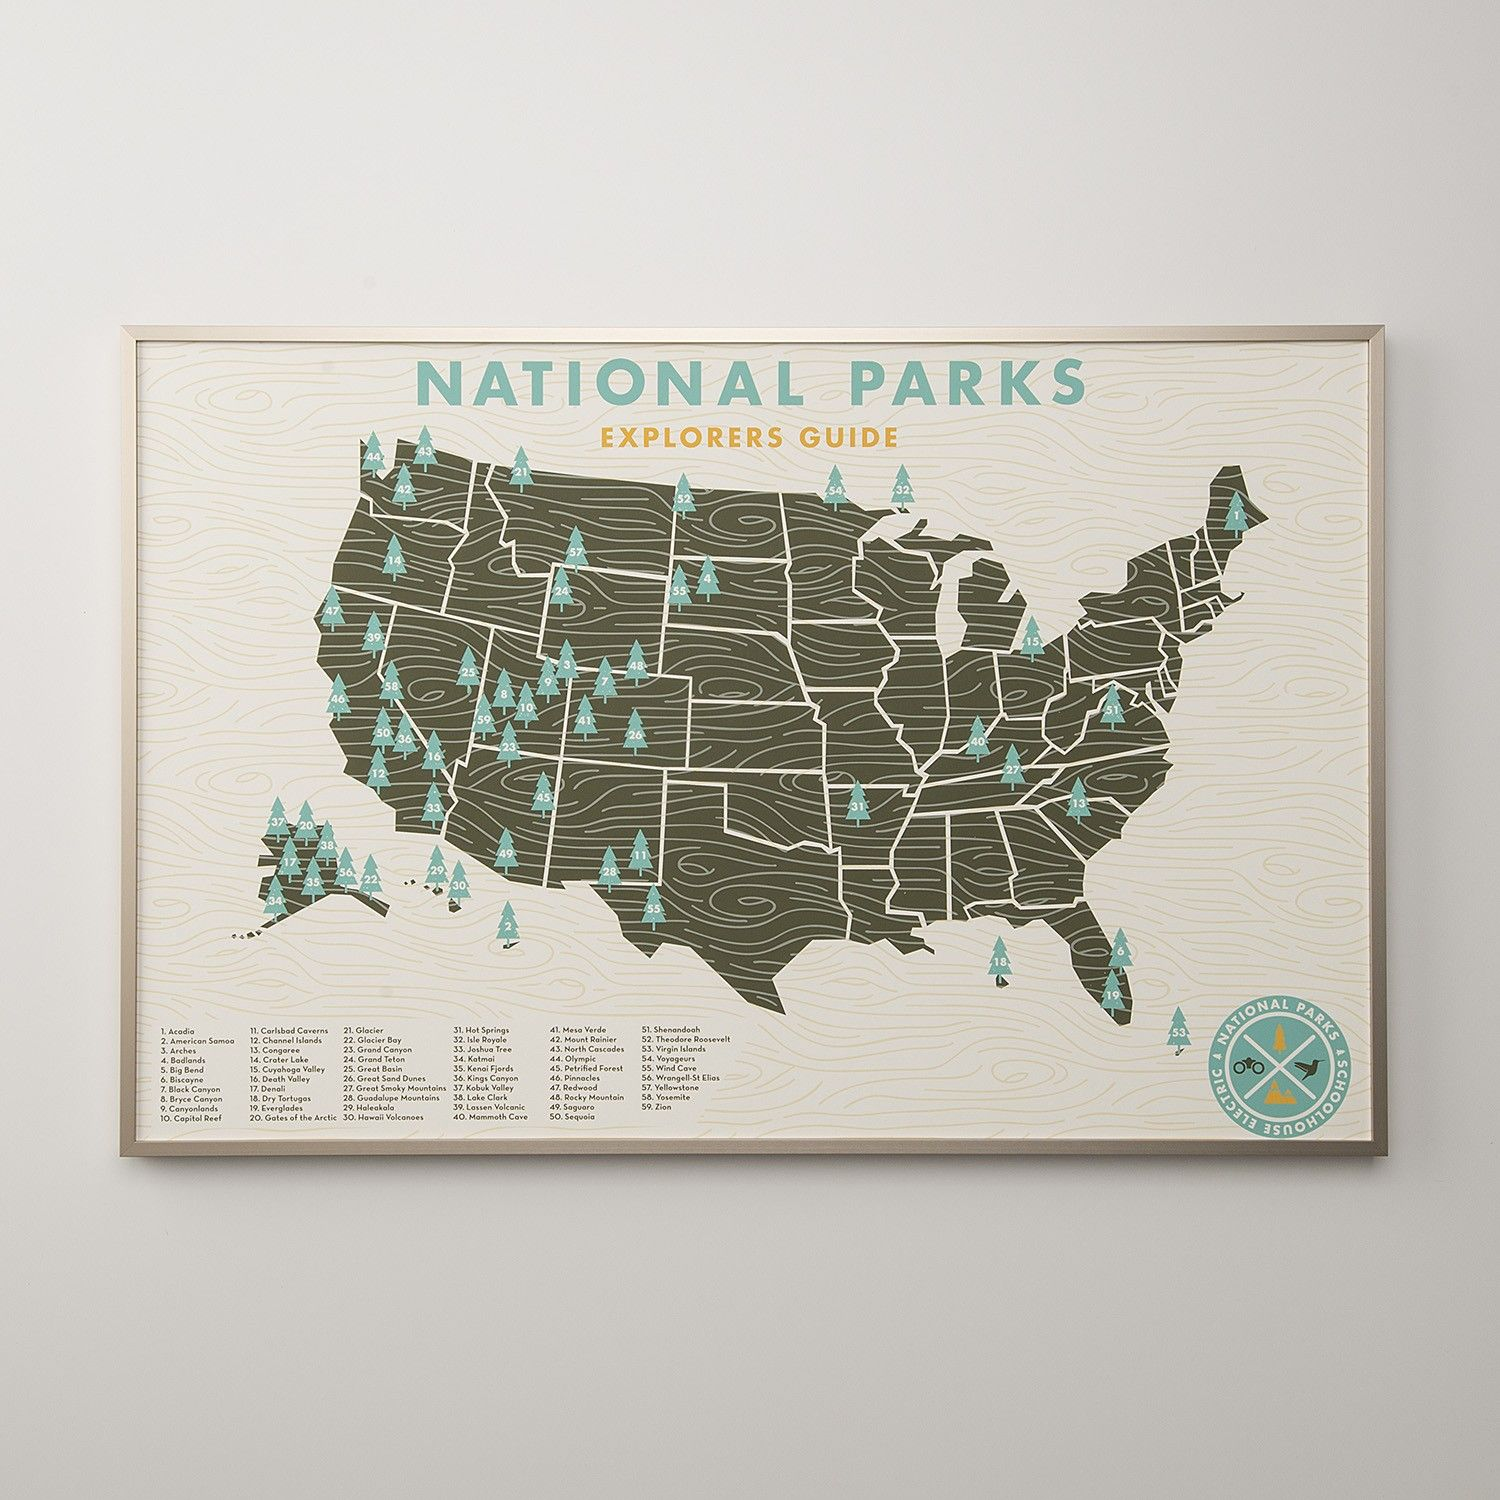 Us National Parks Wall Map Art Prints | National parks map, National parks, Us national parks